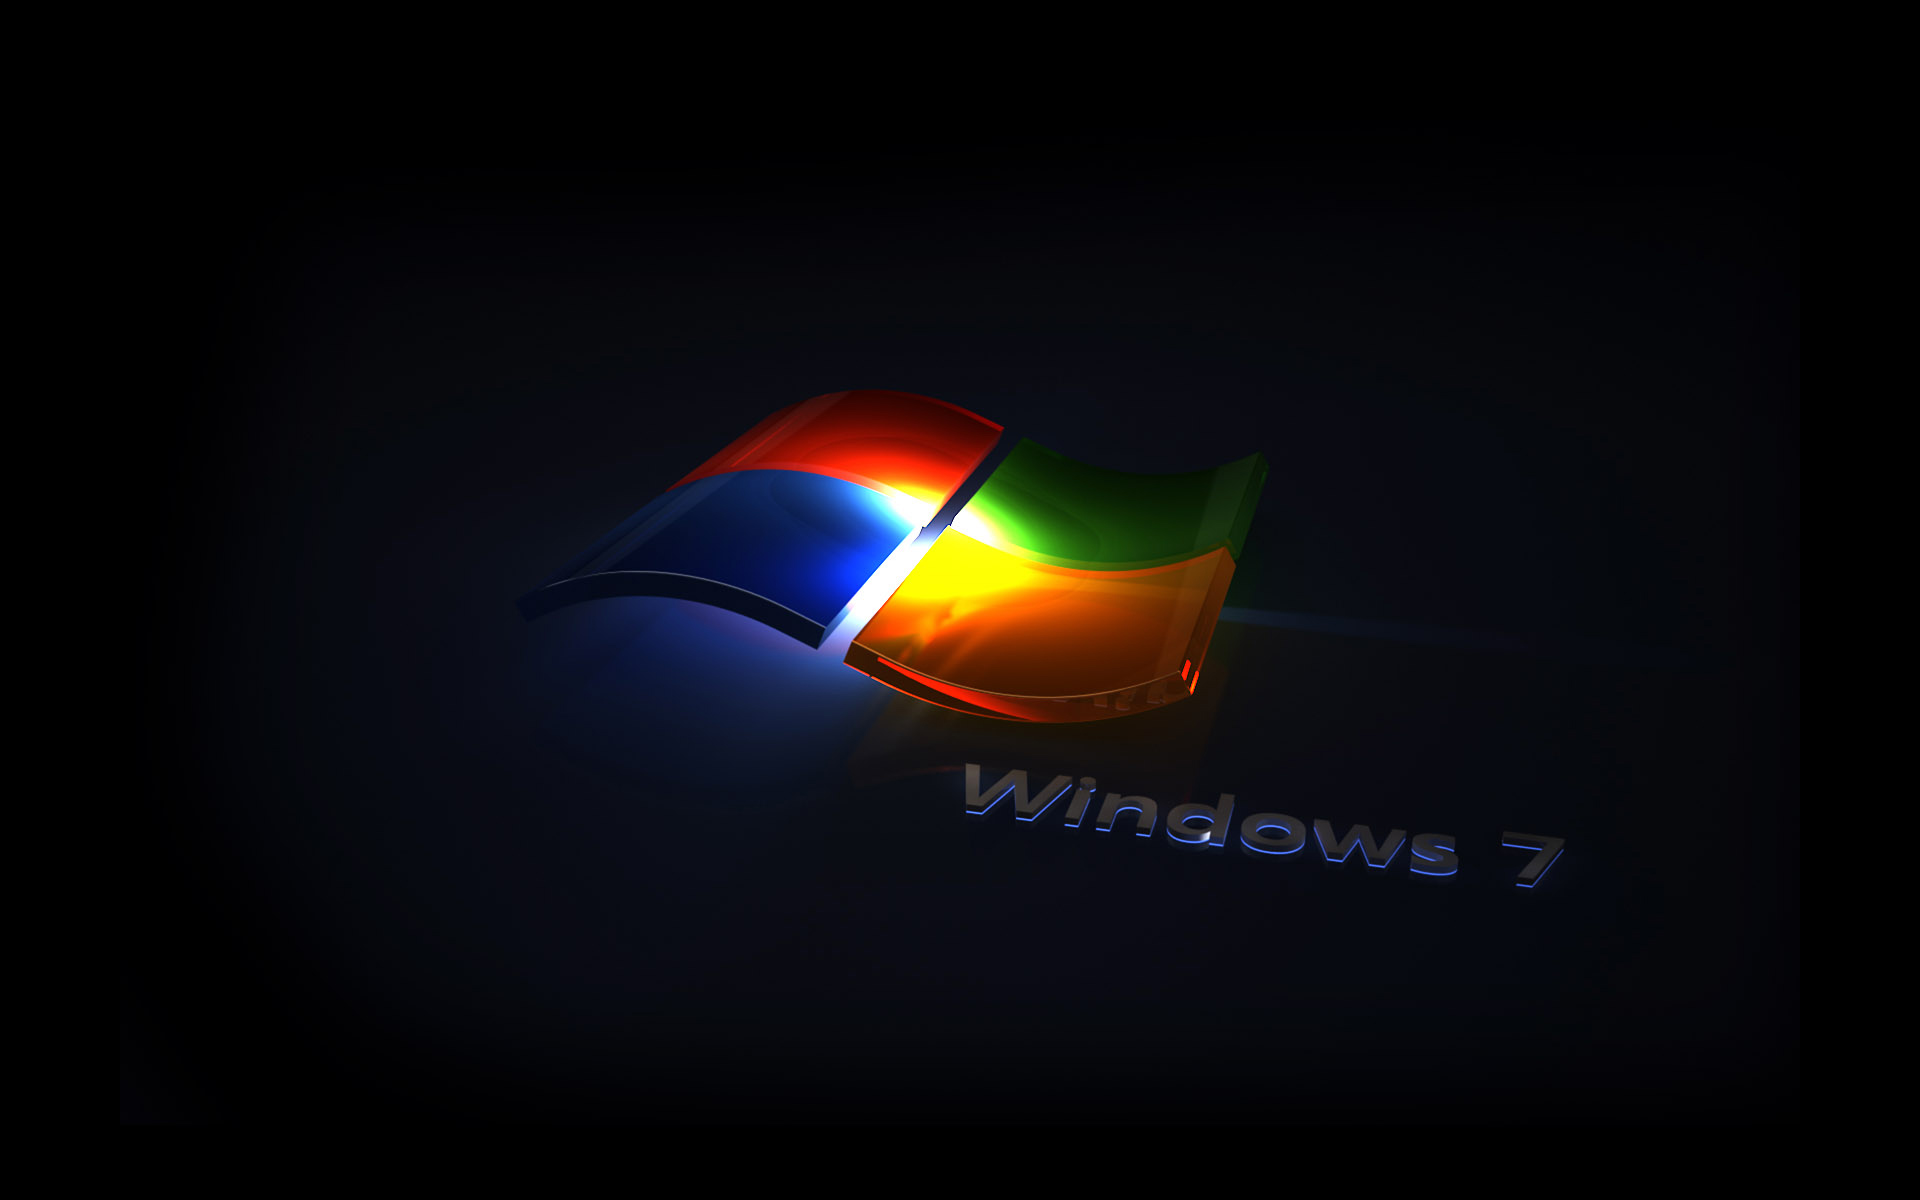 Windows 7 3d wallpaper 1920x1200 wallpapersafari desktop backgrounds computers windows 7 3d light windows 7 1920x1200 voltagebd Choice Image